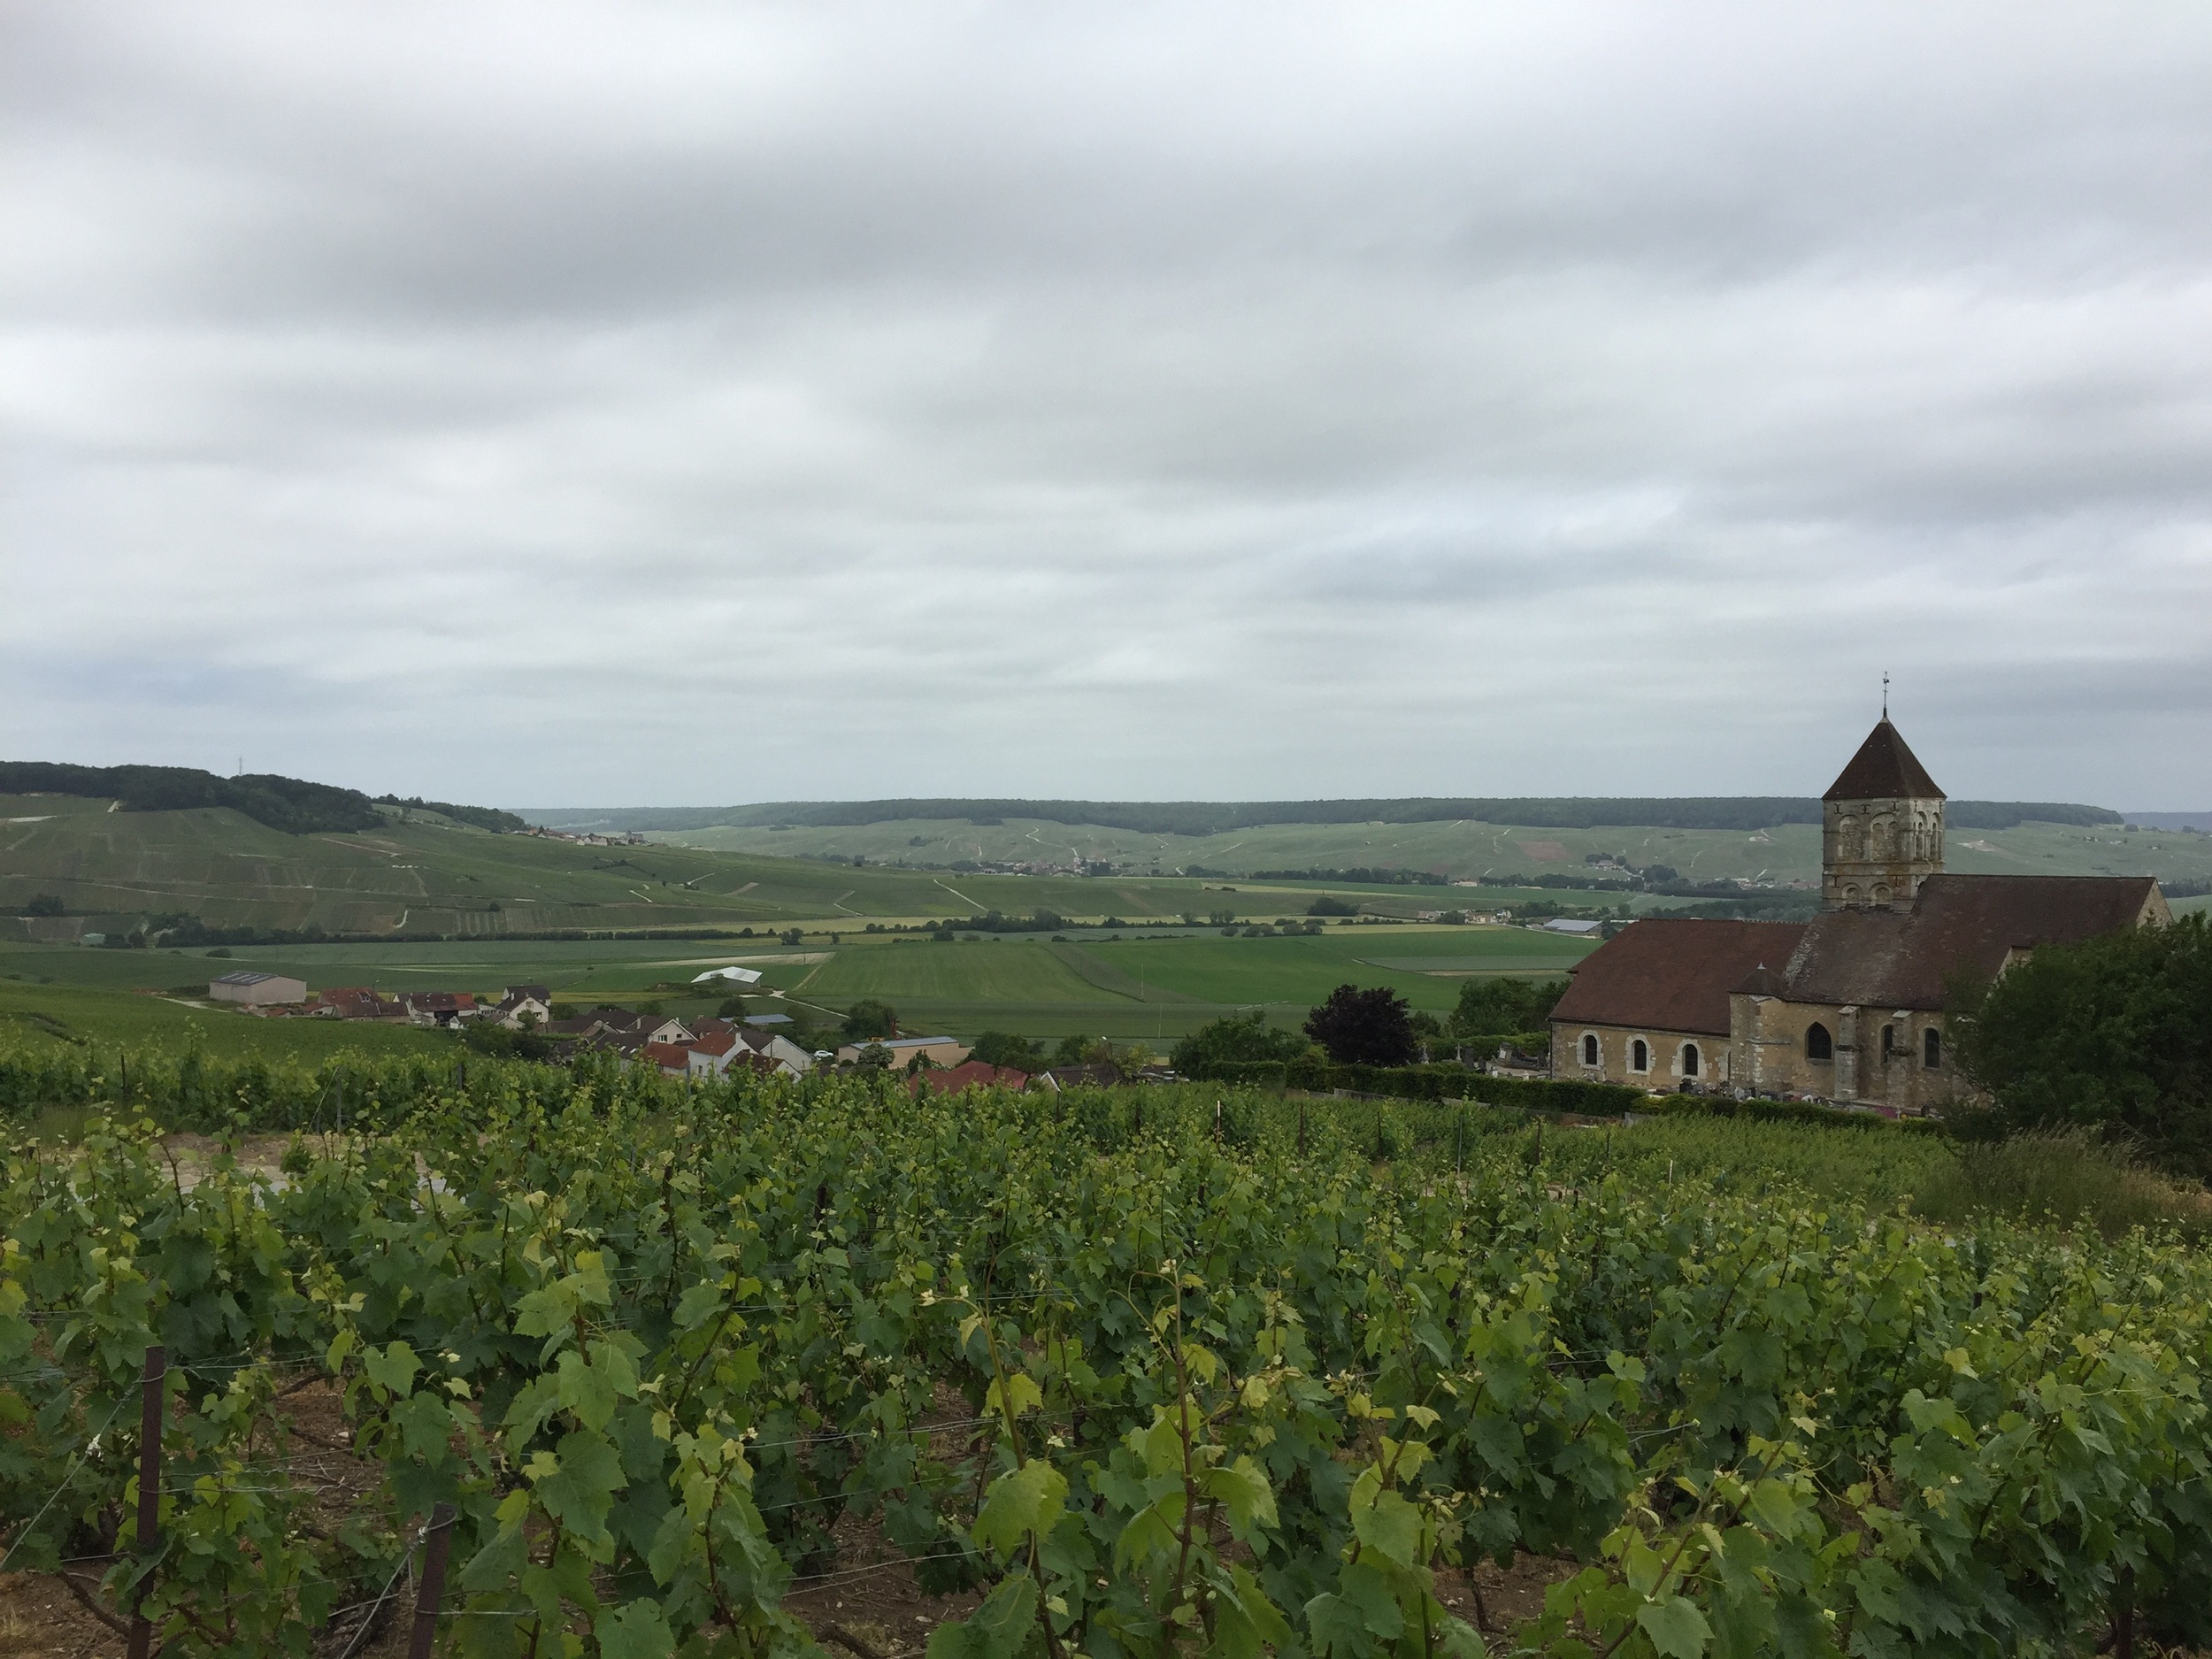 A view from the top of Cuis looking at the Coteaux Sud d'Epernay and the Vallée de la Marne